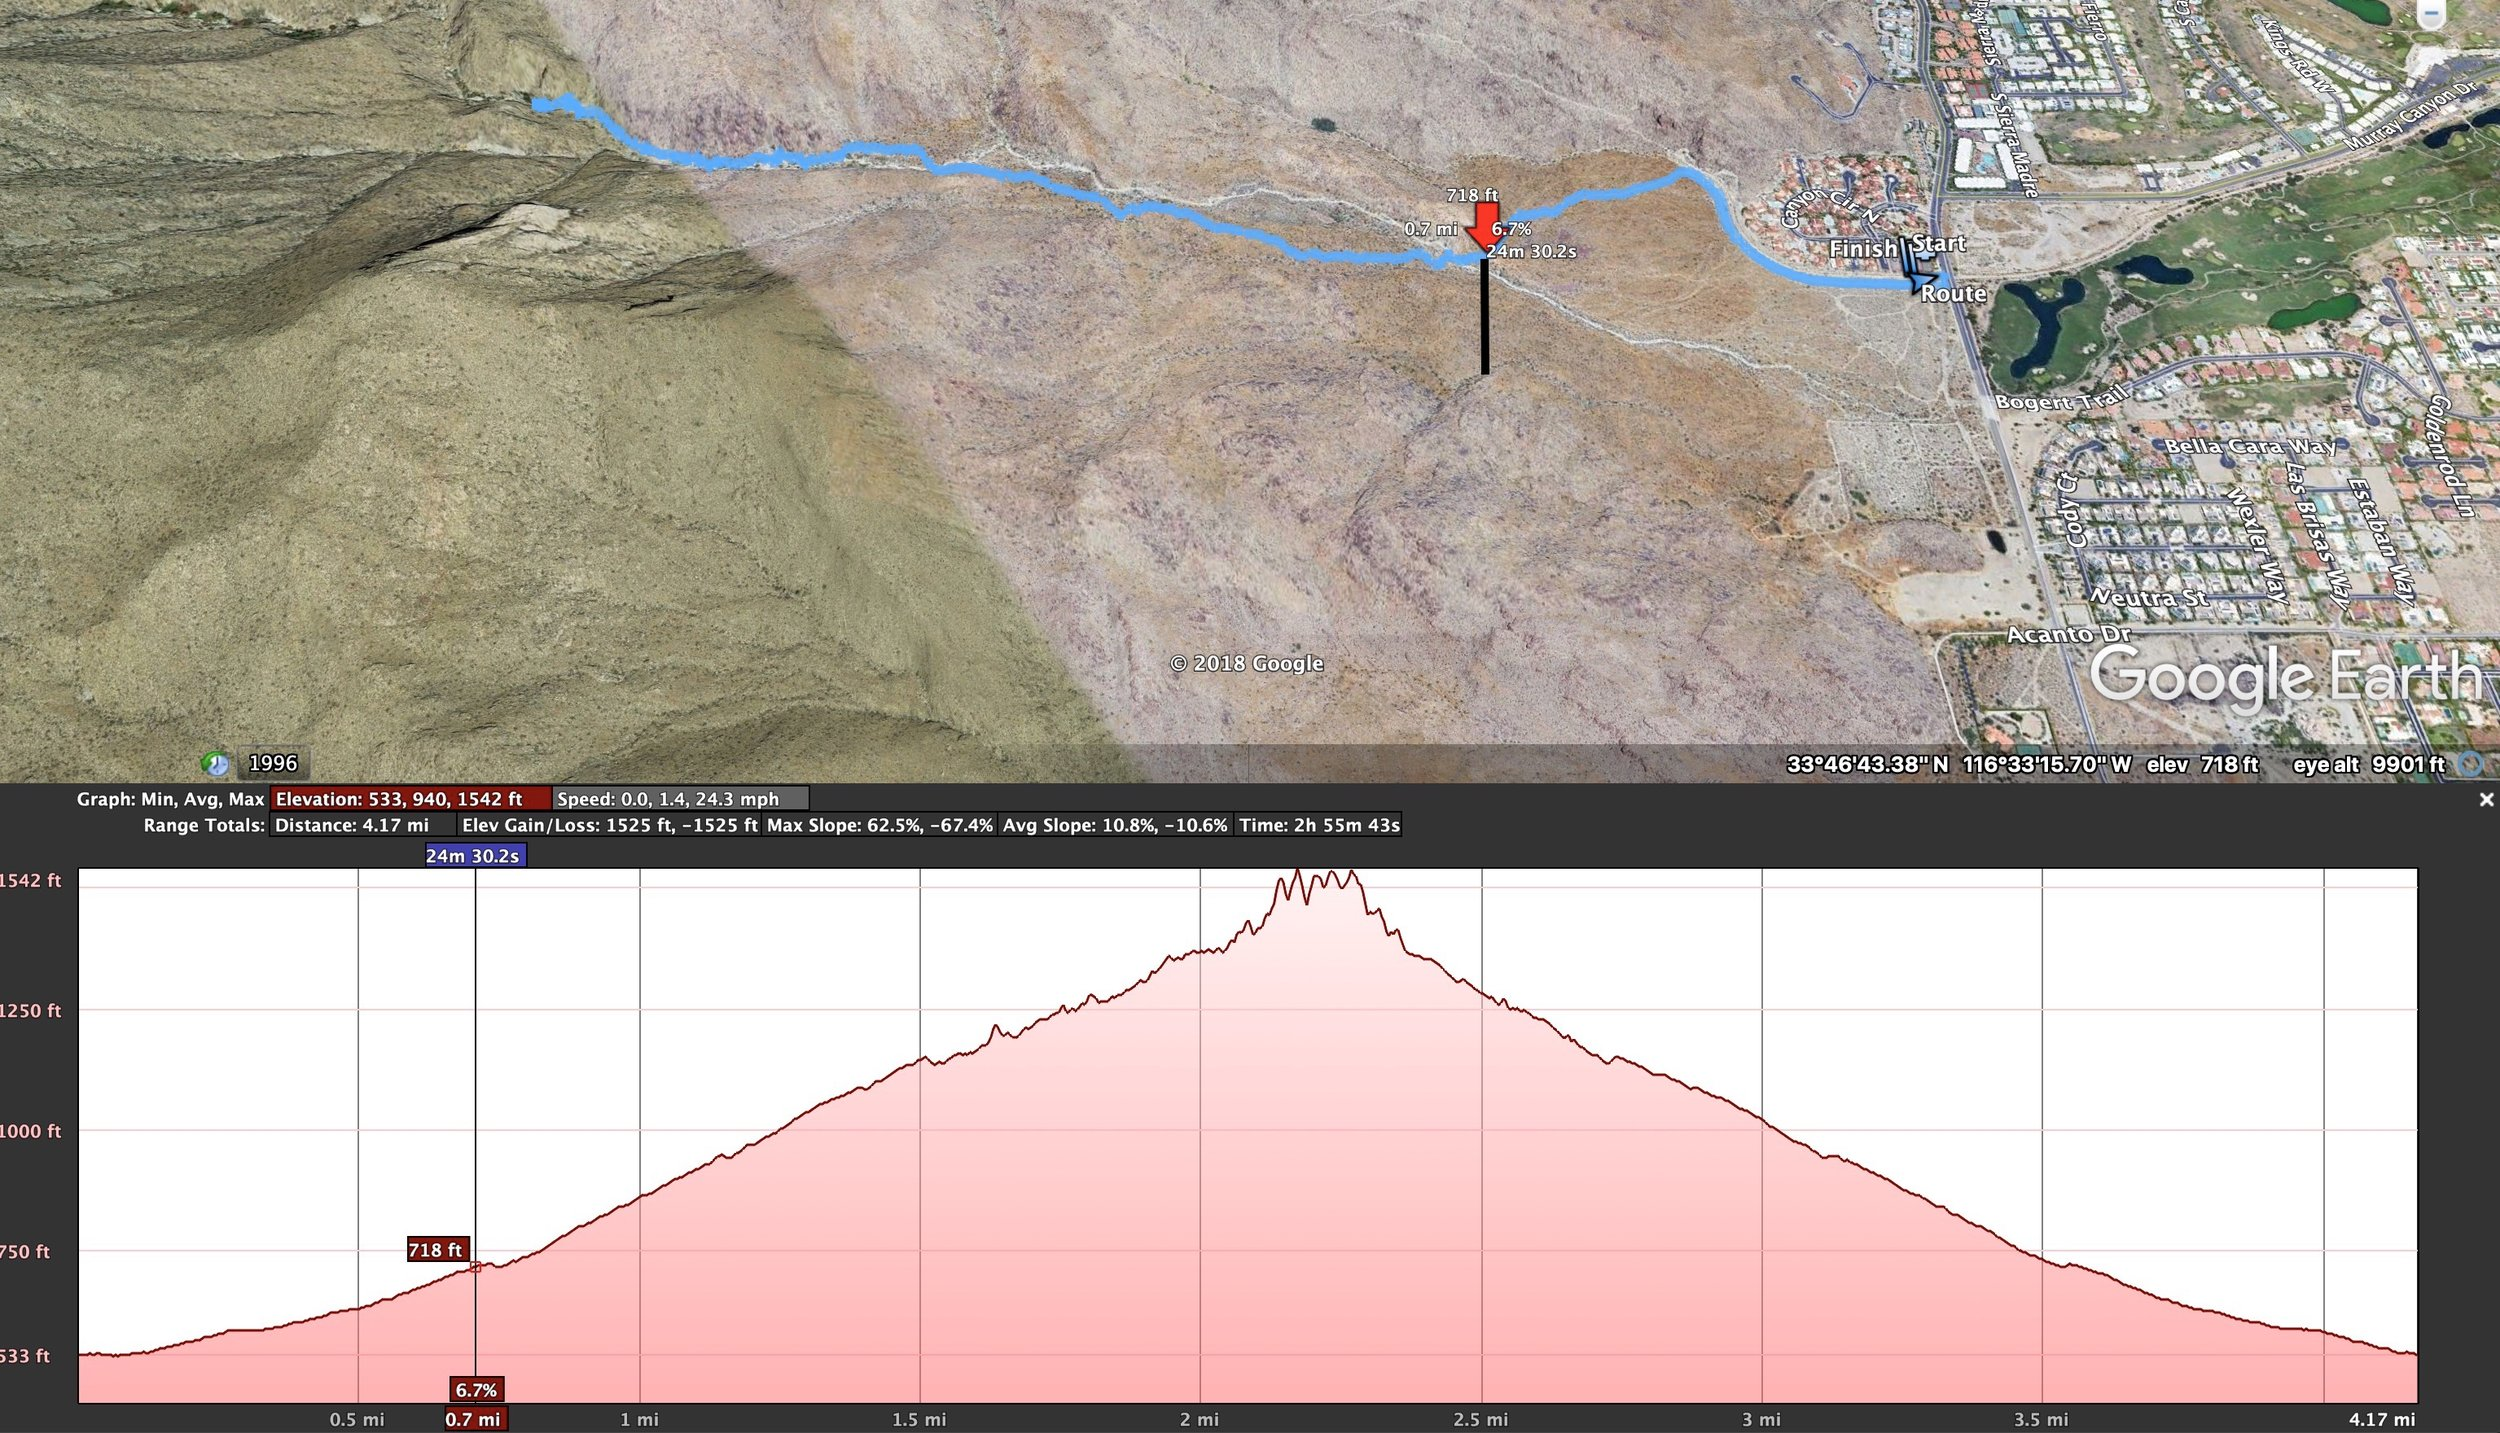 The upper portion of this image where the red arrow is located is where the 1400' long dam will go. That's the black bar. The lower portion of this image shows the elevation profile of the dam at the vertical black line mark. (The lower portion depicts the entire hike profile.) The dam will be 100% visible from every trail that can see Oswit Canyon and visible to anyone who lives nearby.